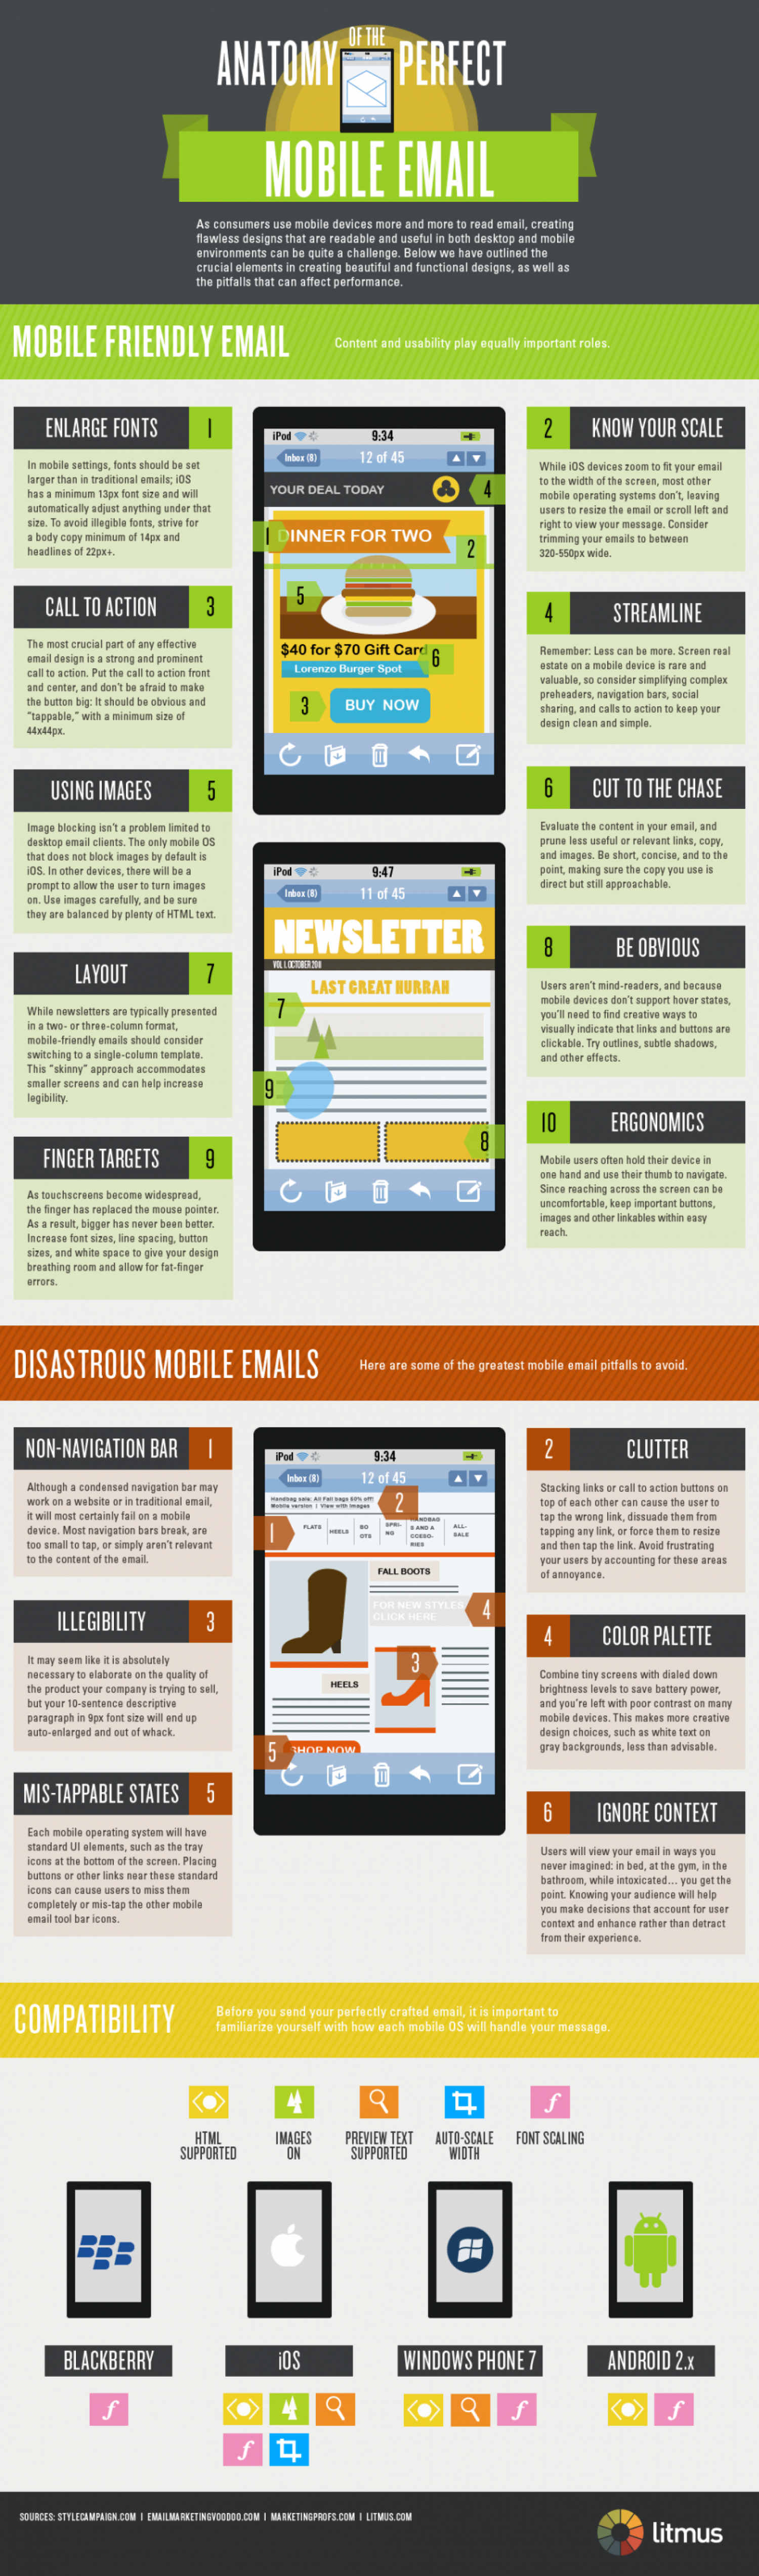 The Anatomy of the Perfect Mobile Email Infographic